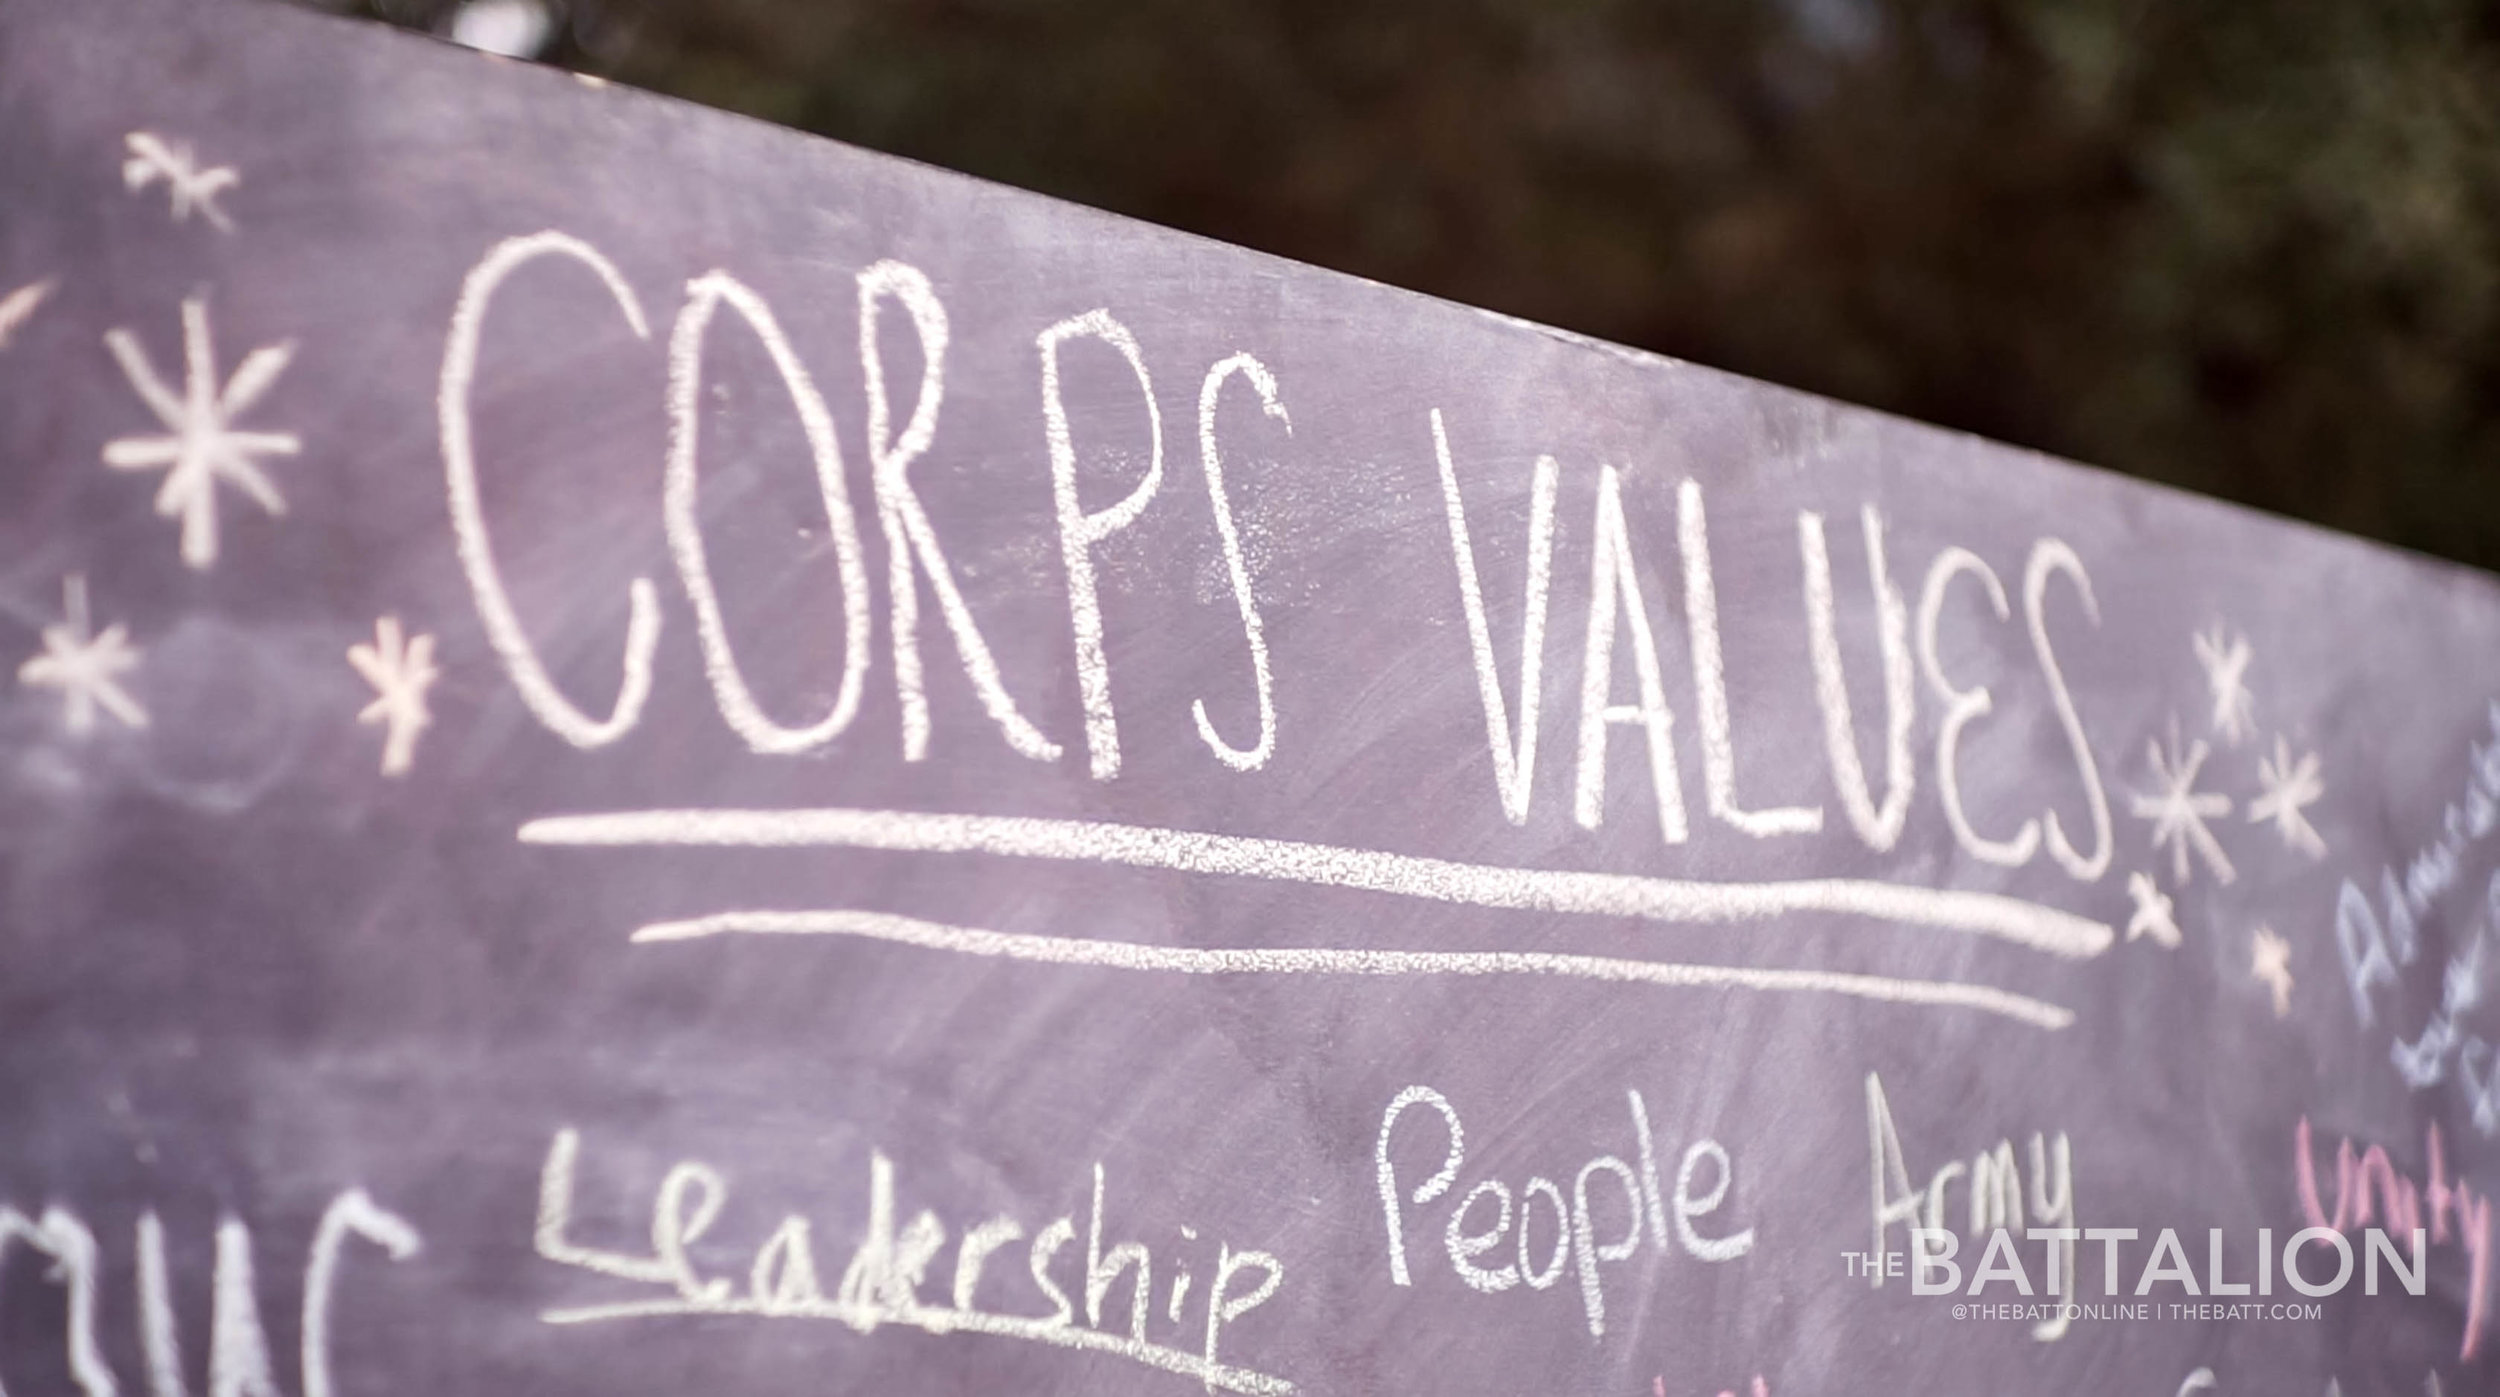 Students were asked to write what comes to mind when they think of the Corps of Cadets.